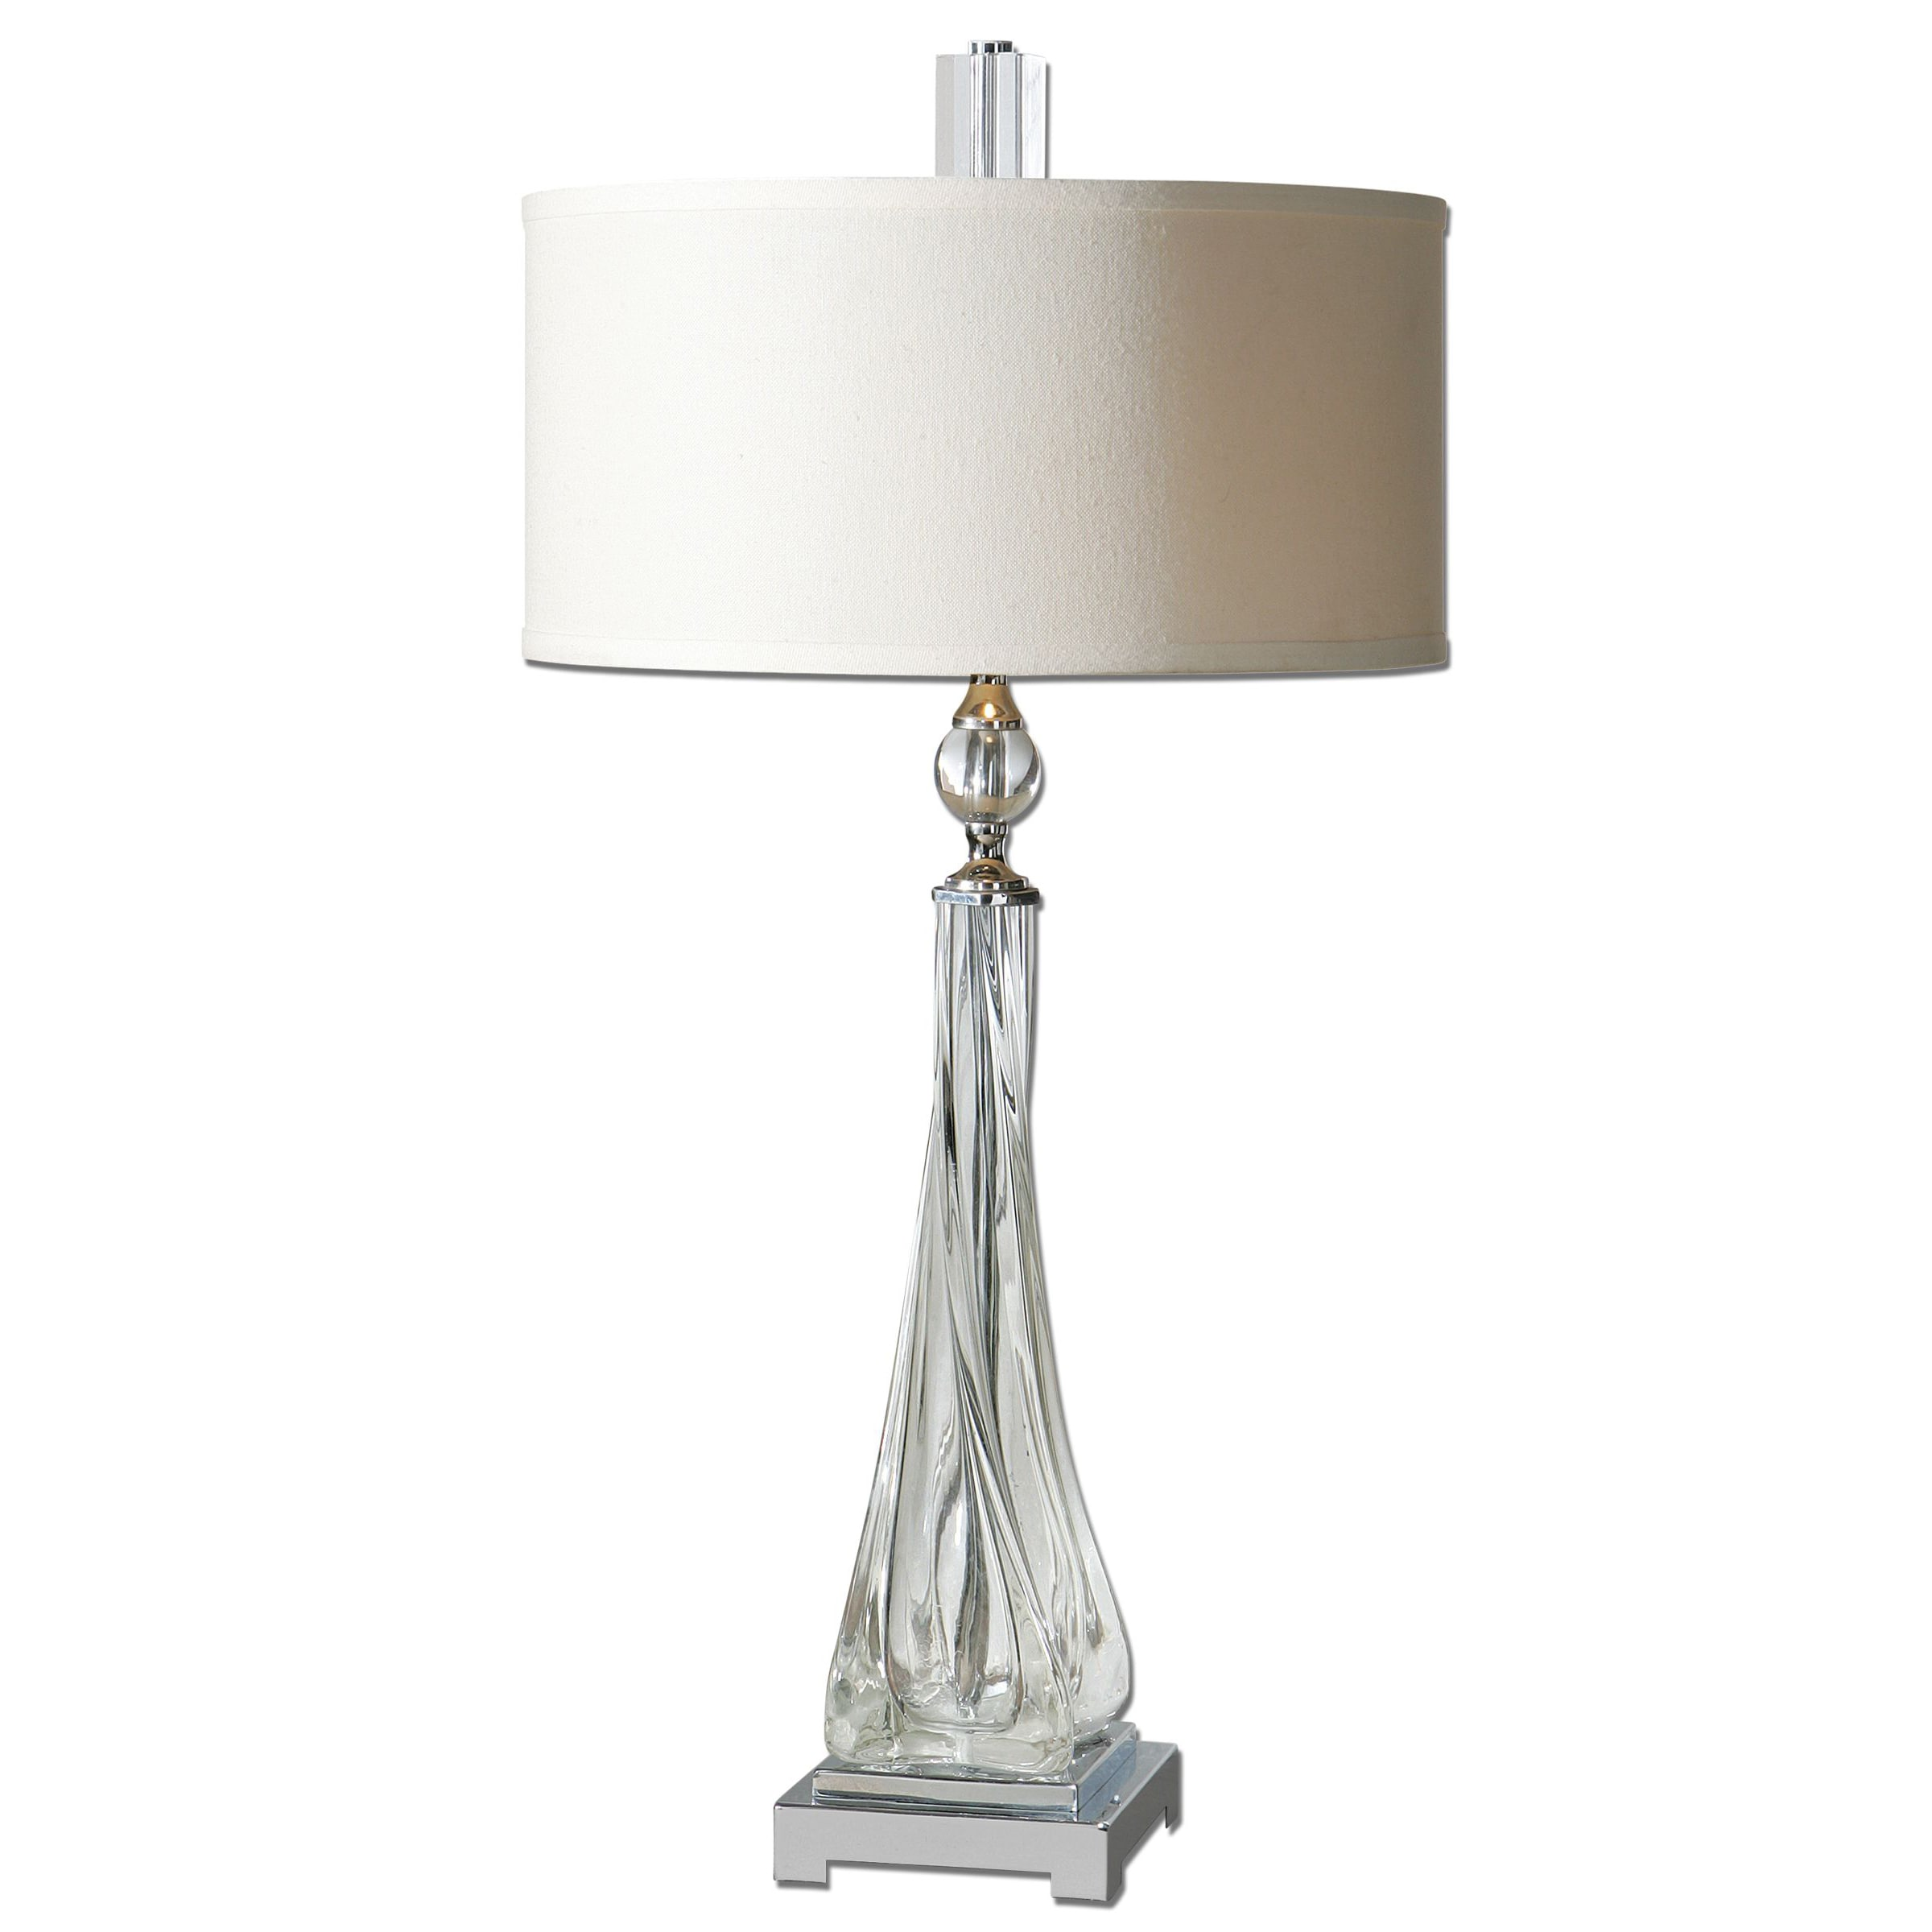 Shop Uttermost Grancona Twisted Glass Table Lamp - Free Shipping ...